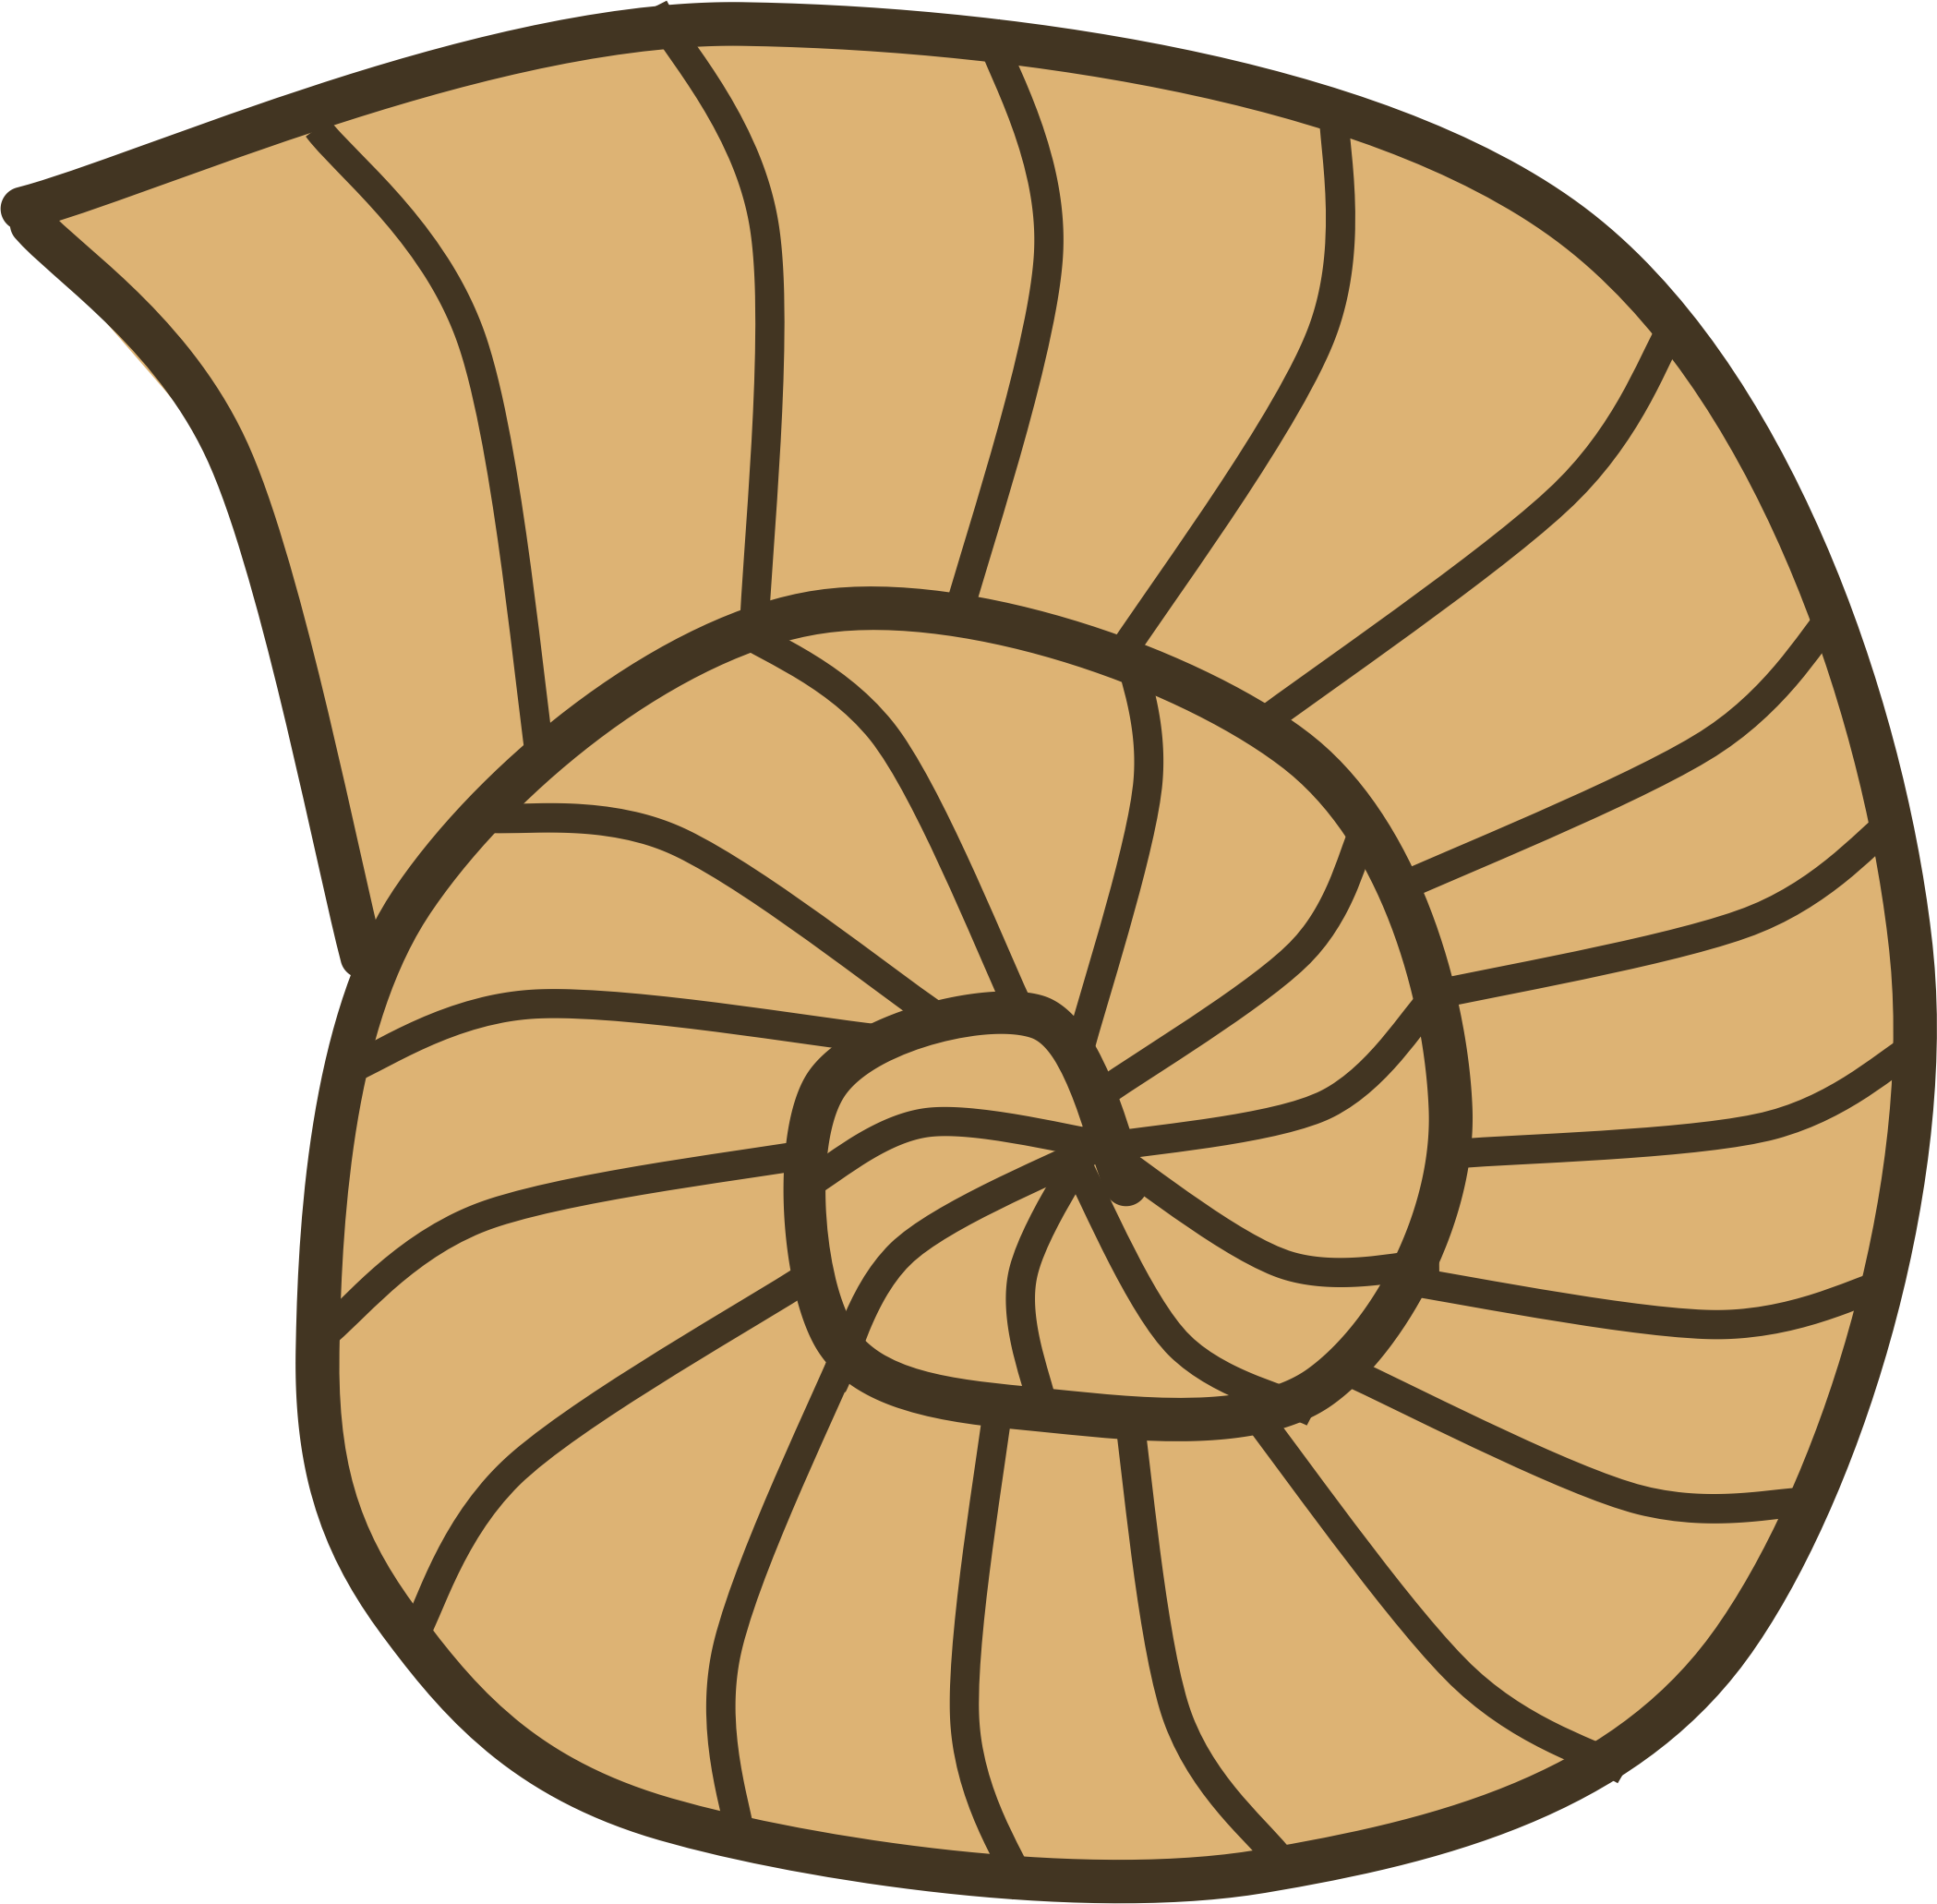 Snail big image png. Shell clipart shell spiral